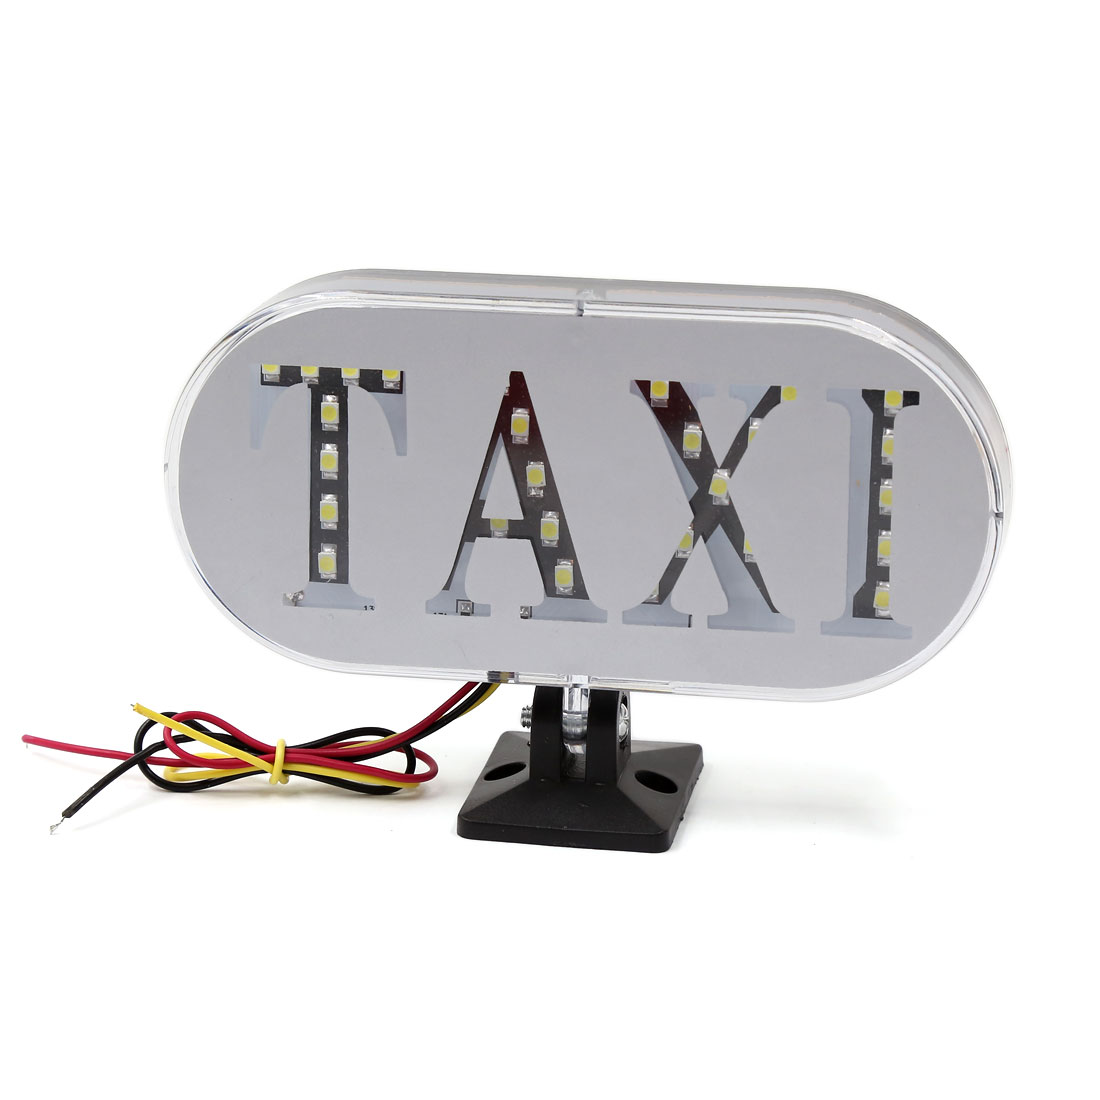 Plastic Shell Rectangular White SMD 32-LEDs Cab Taxi Signal Sign Light Lamp 12V